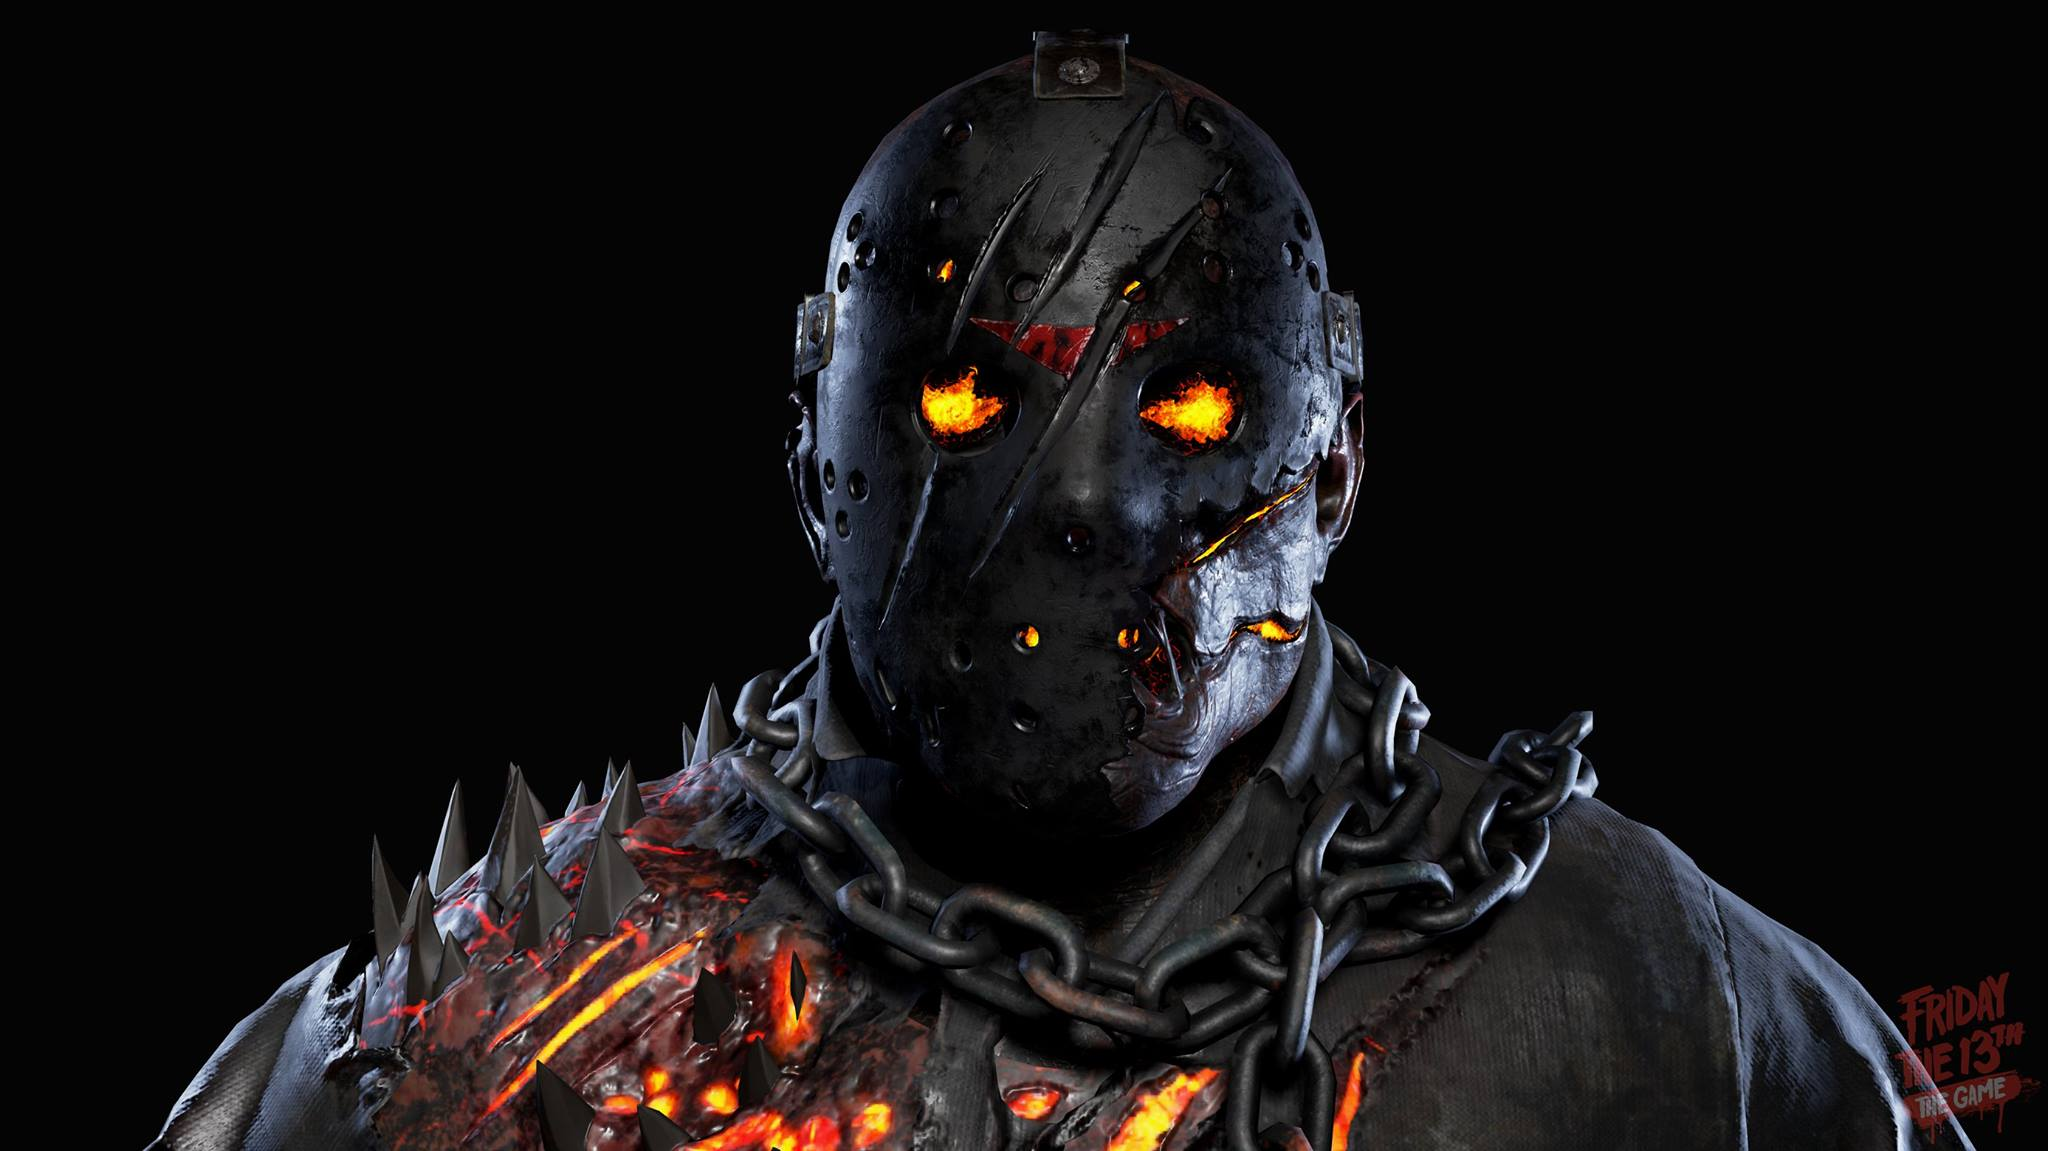 Friday The 13th Game Wallpaper: Here's The Hellish New Jason Designed By Tom Savini For